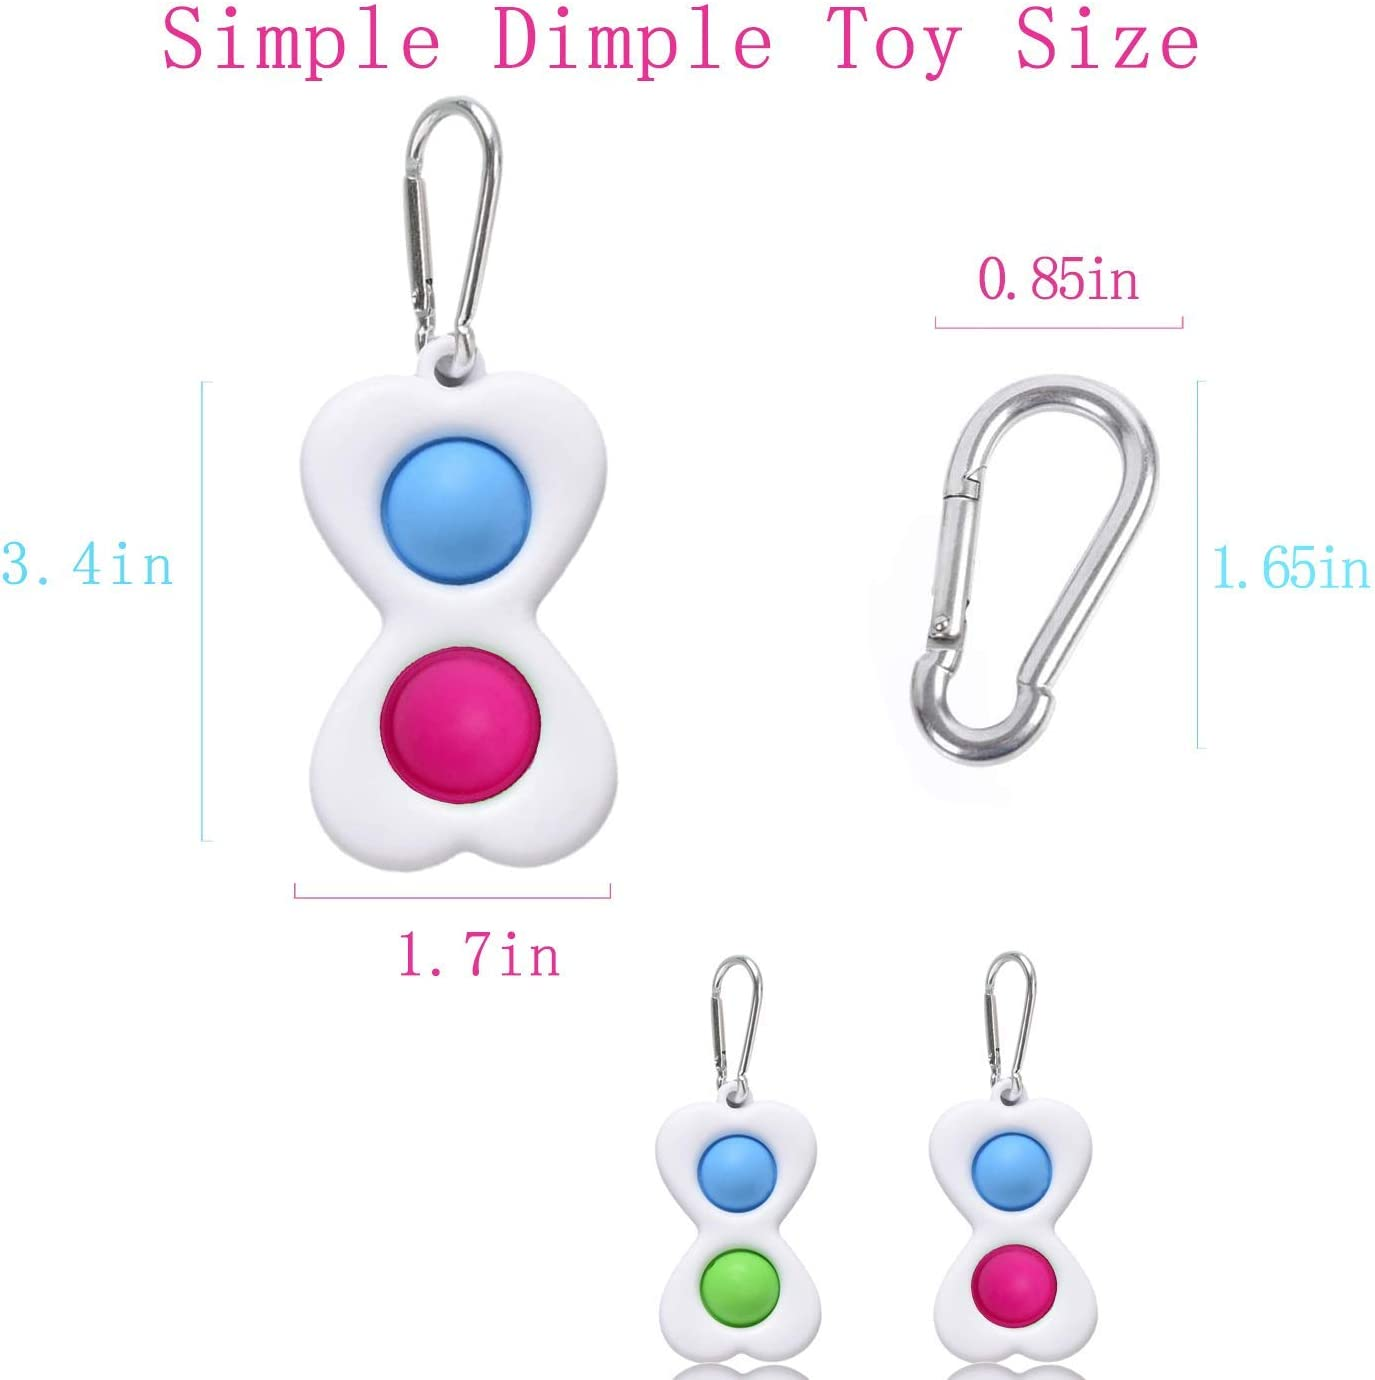 2Pack Simple Dimple Fidget Popper Simple Dimple Fidget Toy Stress Relief for Adults and Kids Heart-Shaped Fidget Toy with Key Chain